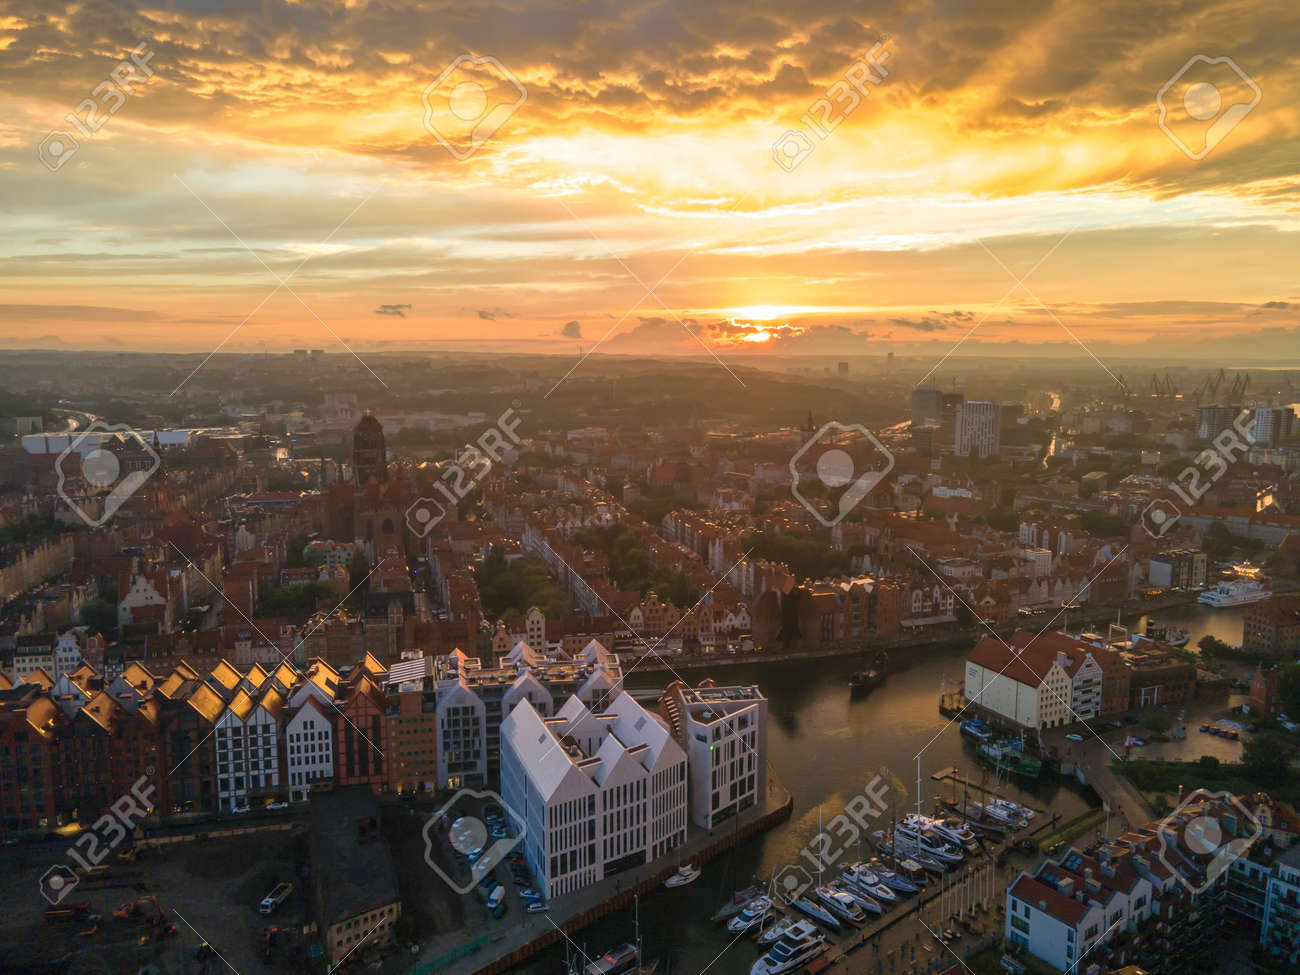 Aerial sunset view of the amazing old town of Gdansk (Poland), member of Hanseatic League with ships and yachts in the river - 159938178